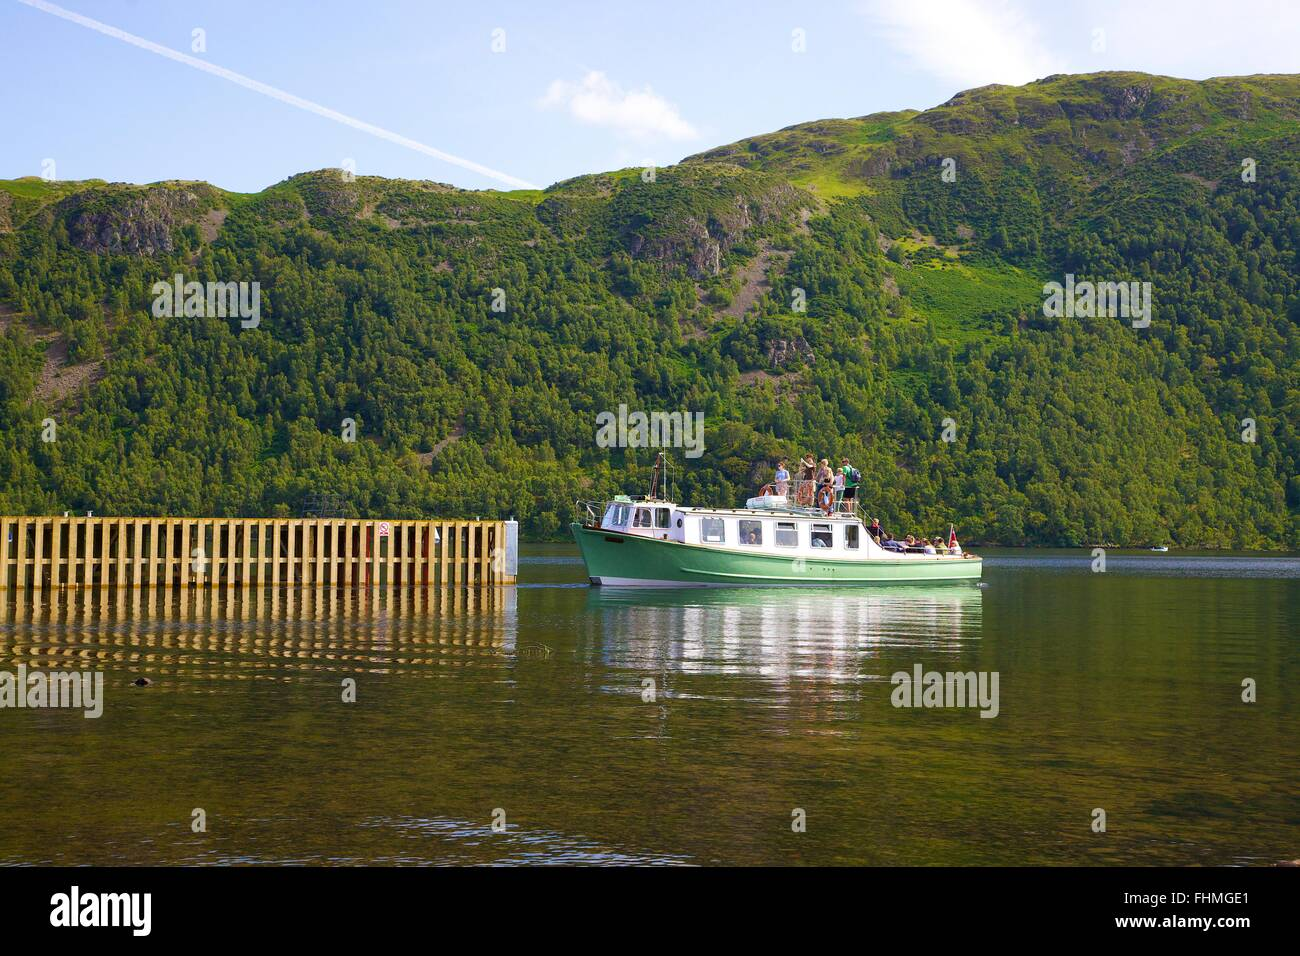 Lake District National Park. Tourists on a launch approaching a jetty on lake Ullswater. - Stock Image